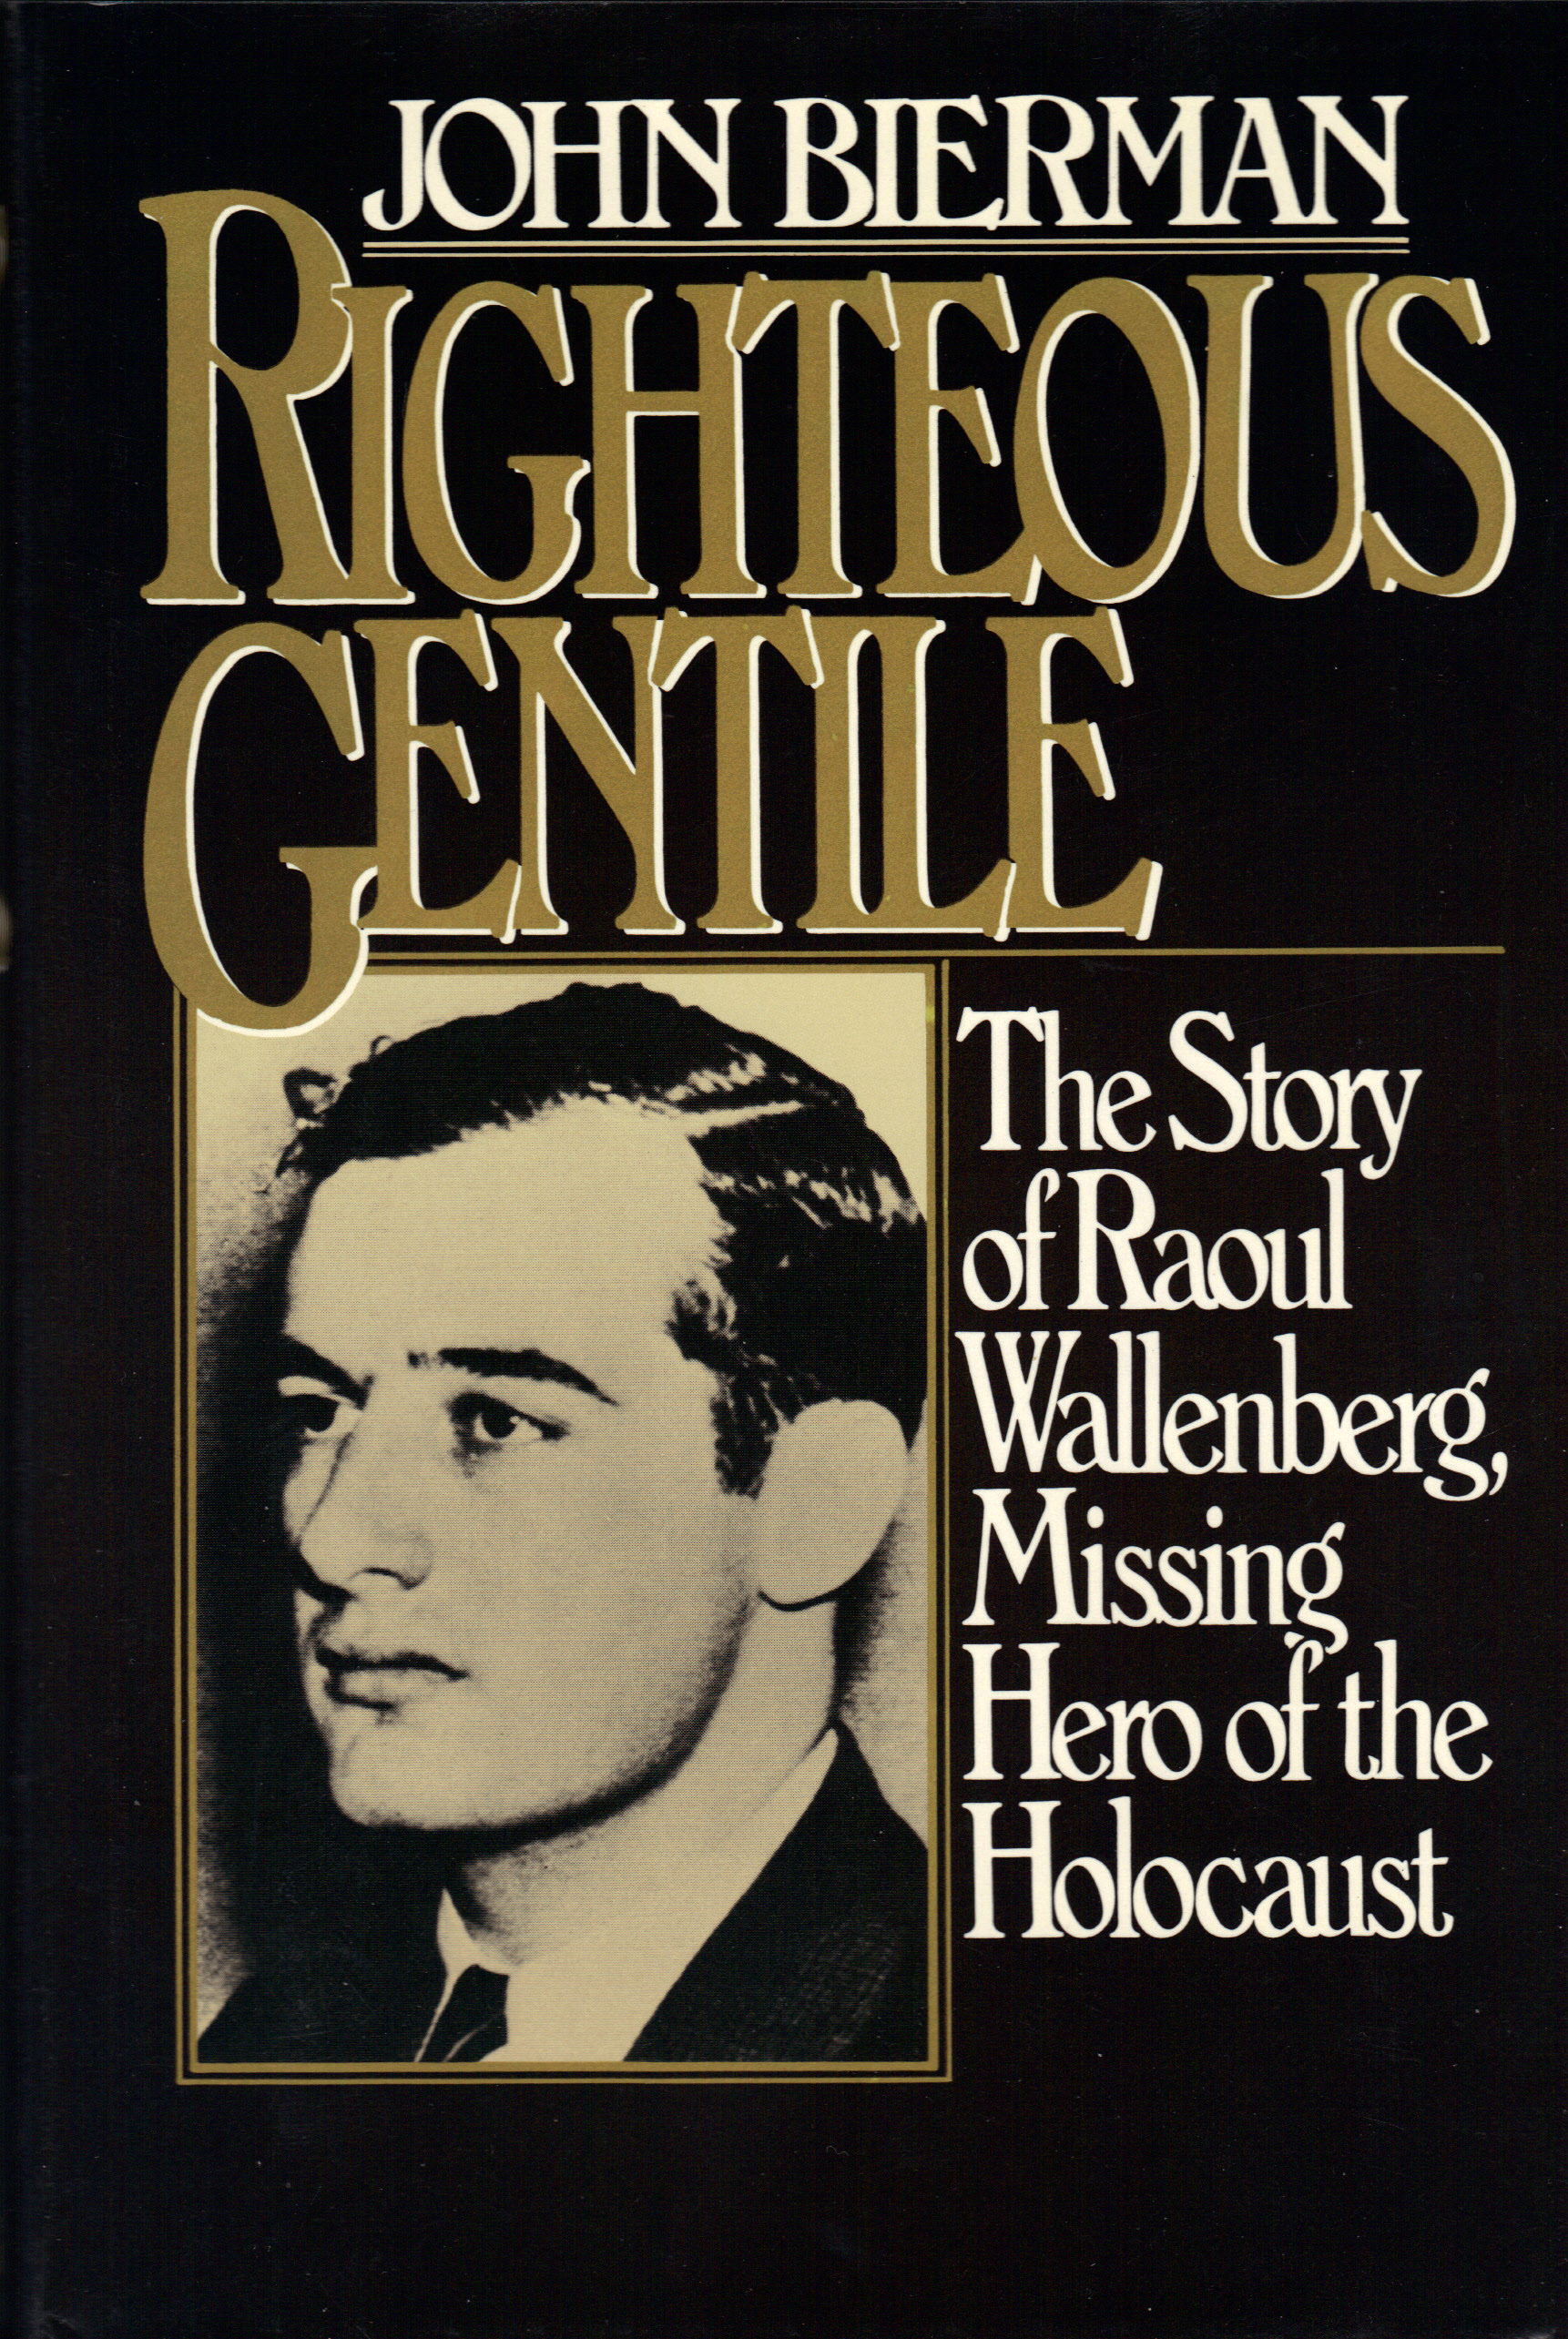 Image for RIGHTEOUS GENTILE ~ The Story of Raoul Wallenberg, Missing Hero of the Holocaust